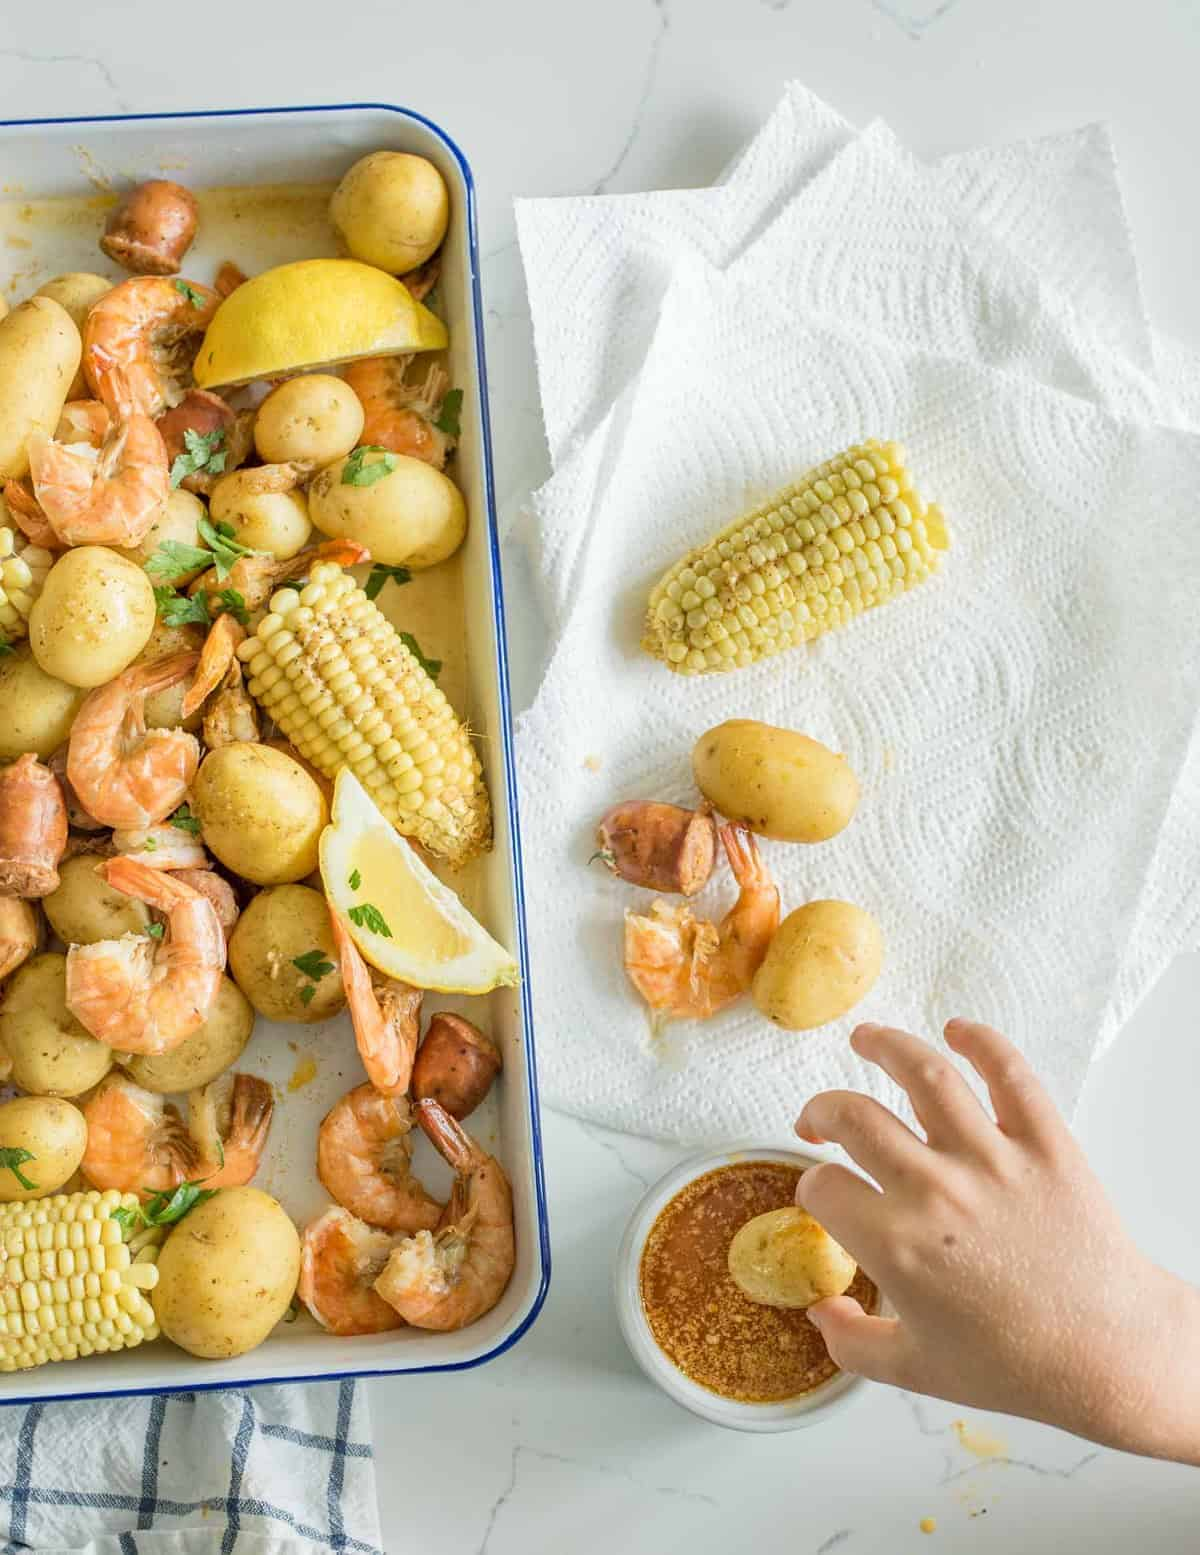 Quick and easy Instant Pot Shrimp Boil made with potatoes, corn, shrimp, sausage and just a few simple seasonings.